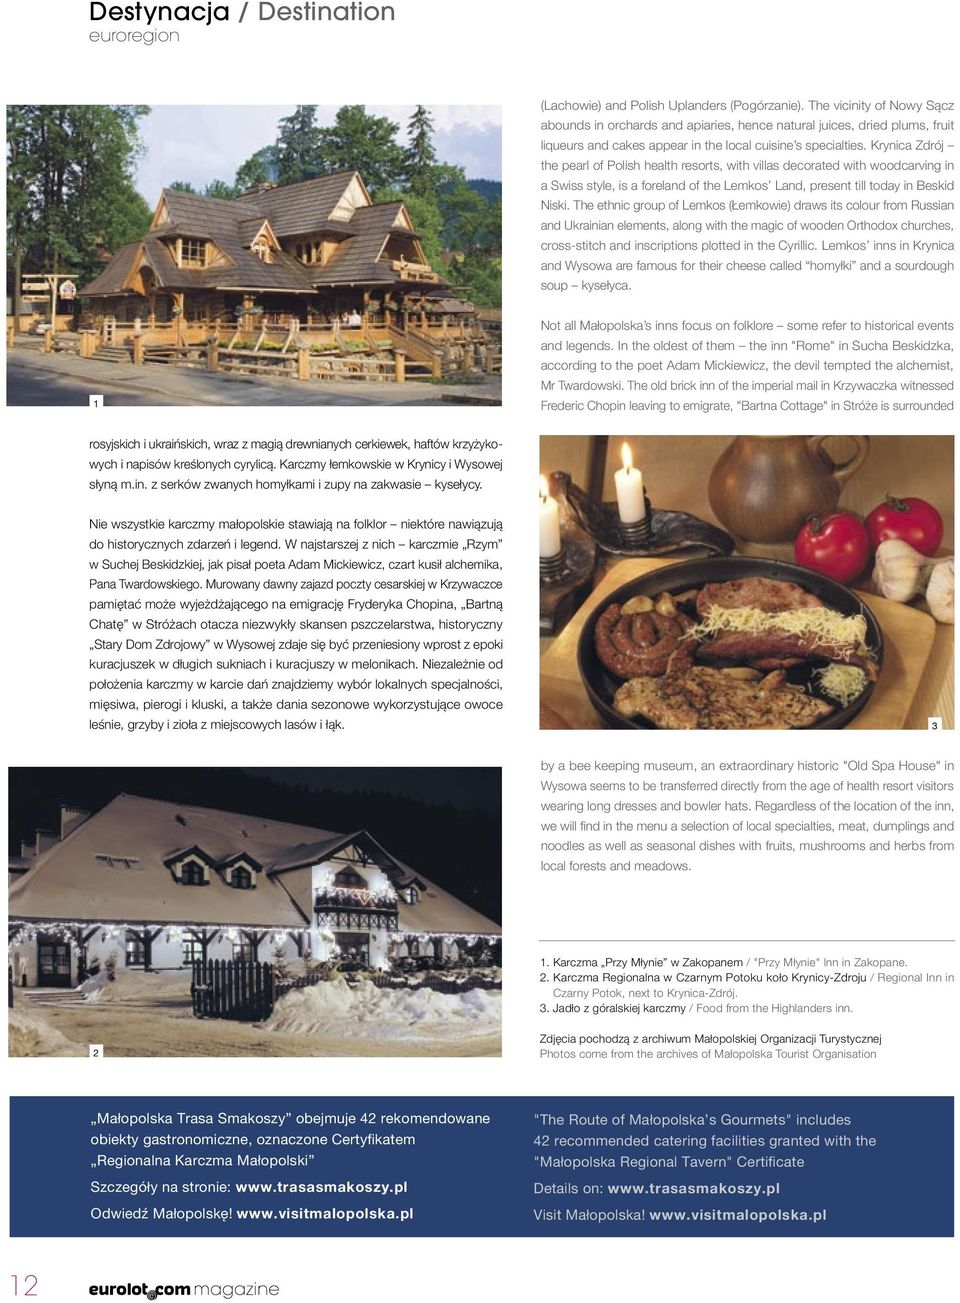 Krynica Zdrój the pearl of Polish health resorts, with villas decorated with woodcarving in a Swiss style, is a foreland of the Lemkos Land, present till today in Beskid Niski.